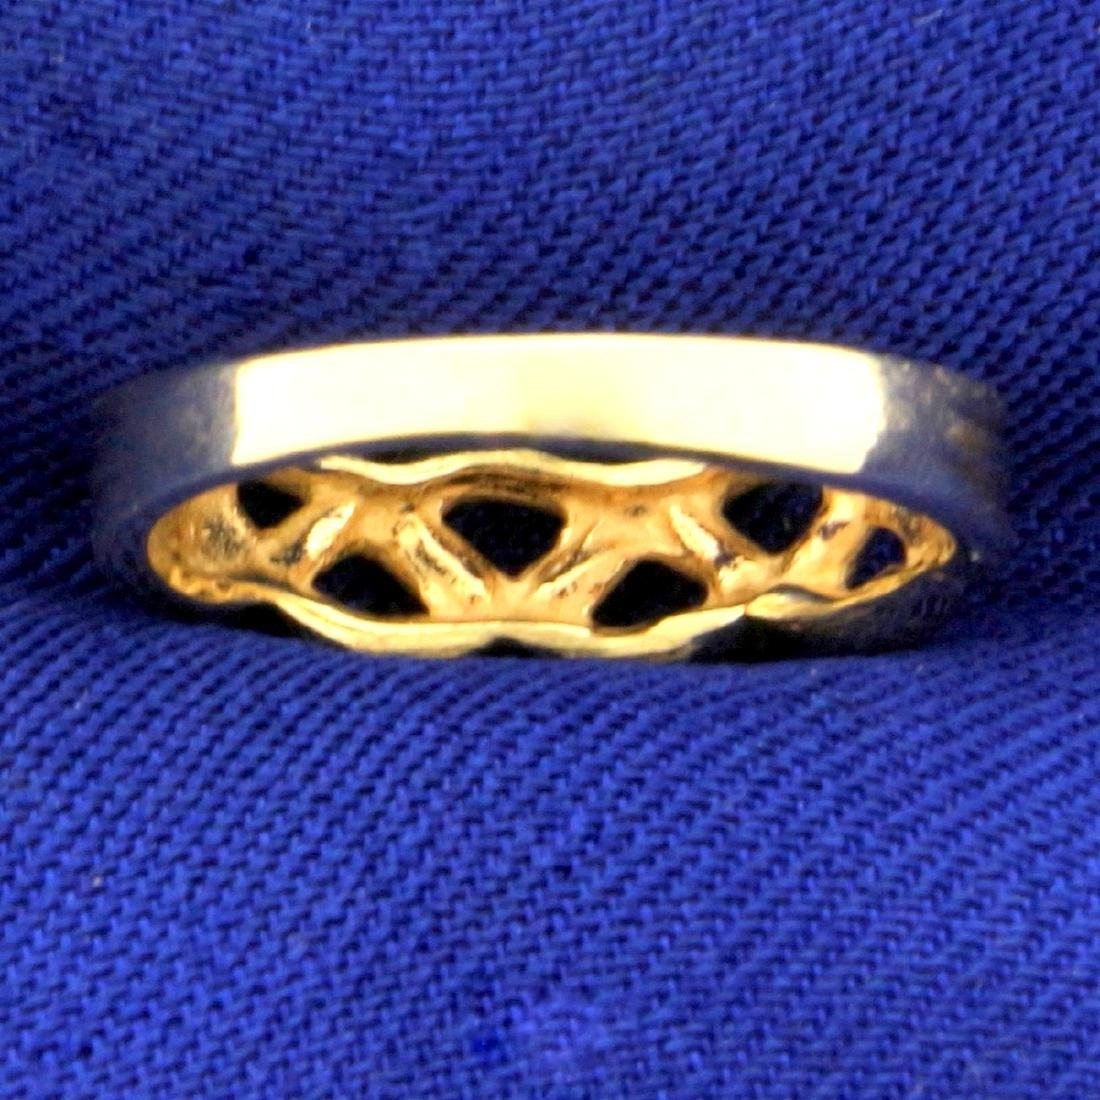 Braided Design Band Ring in 14K Yellow Gold - 4